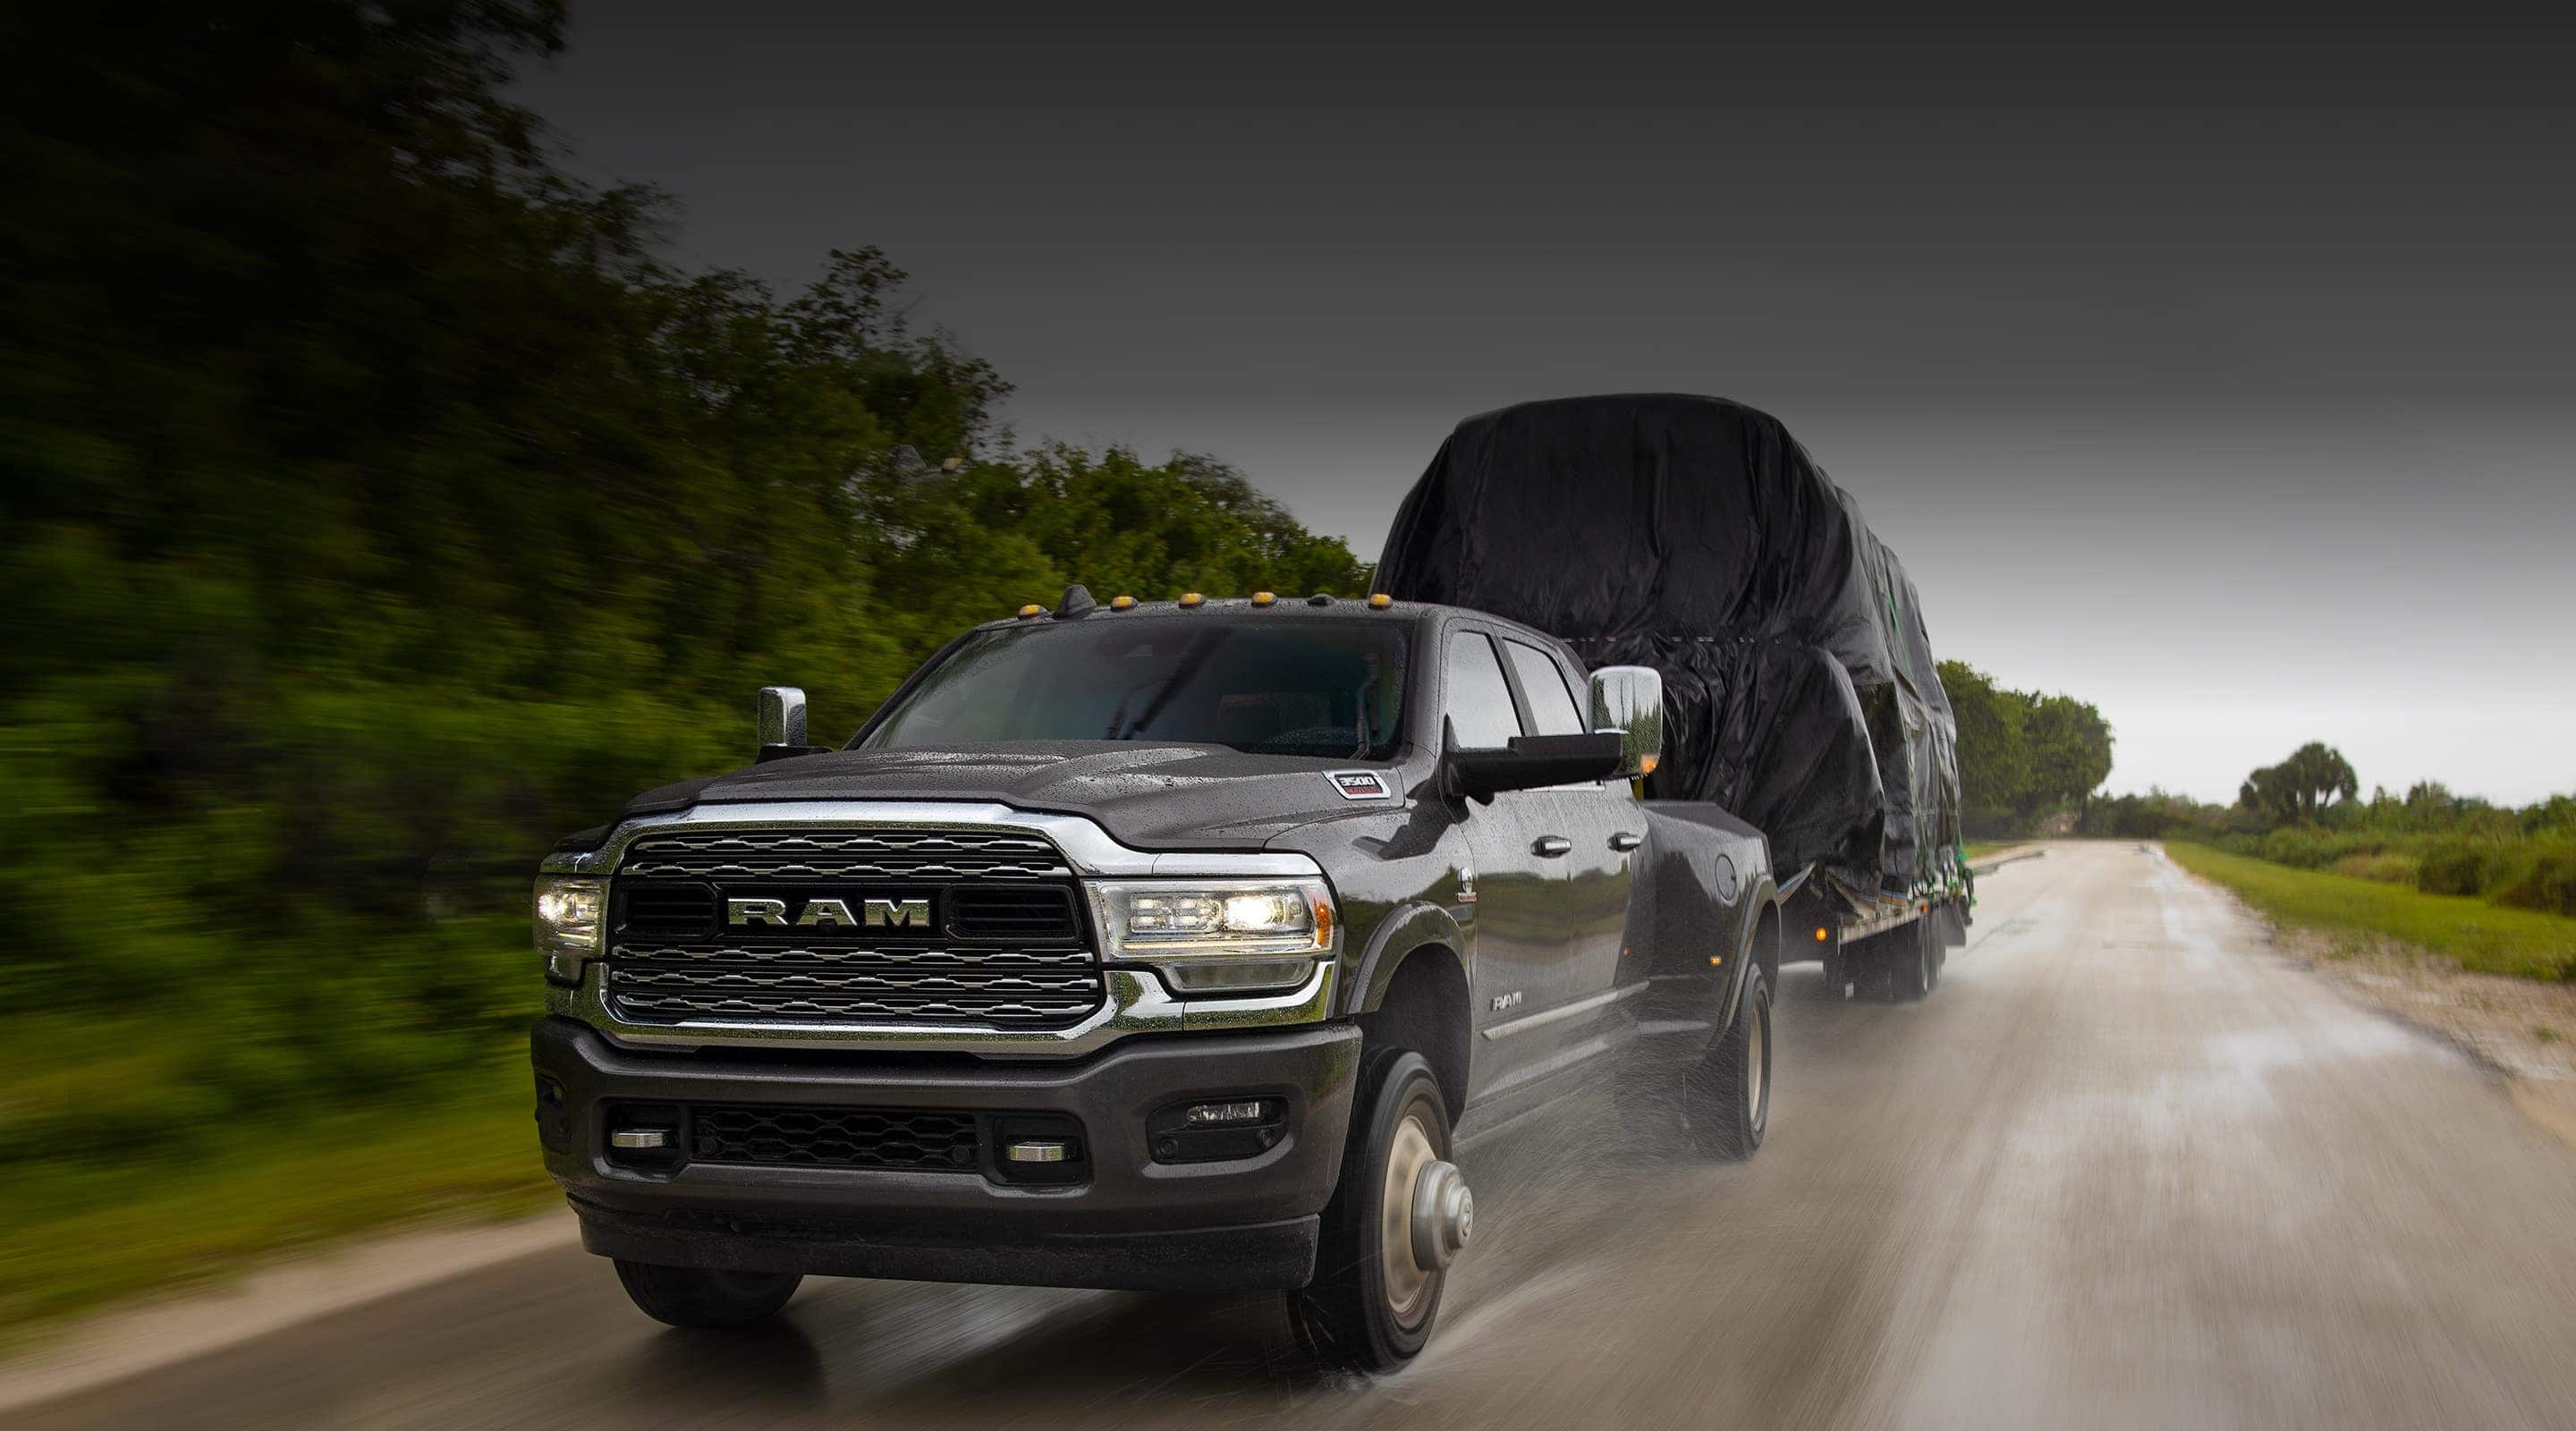 The 2020 Ram 3500 towing a trailer in the pouring rain.